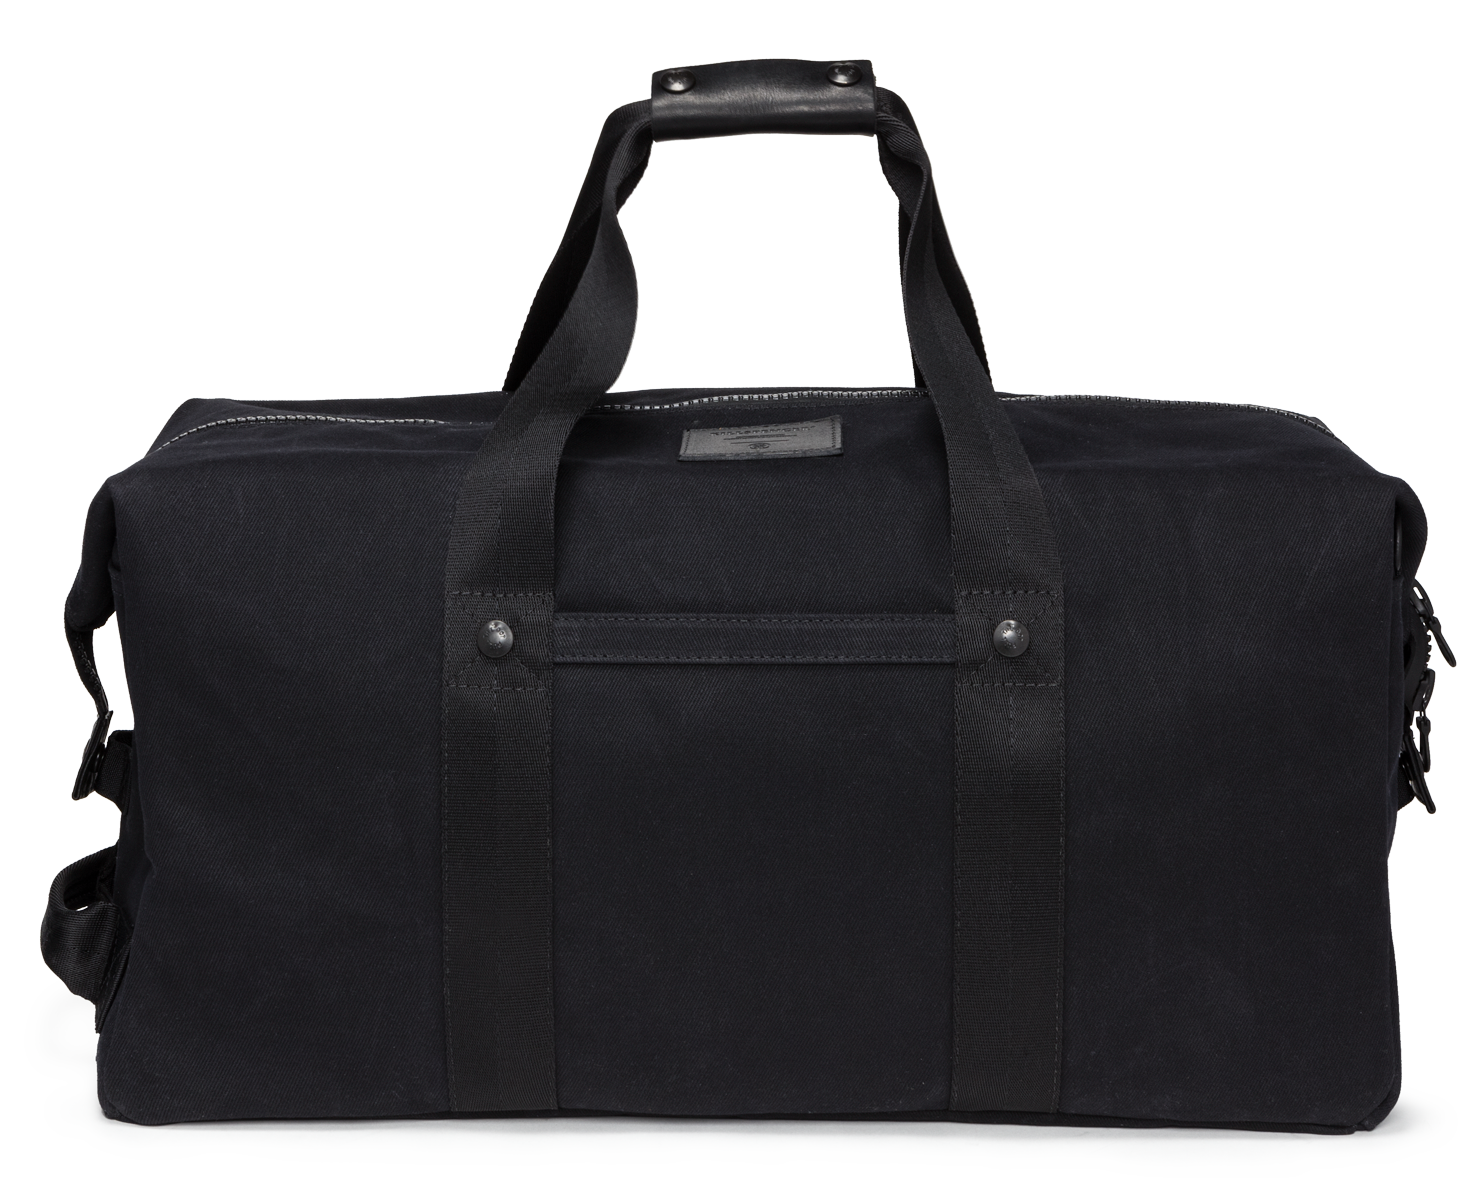 WEEKENDER 2.0 | KILLSPENCER® - Original Black Waxed Canvas